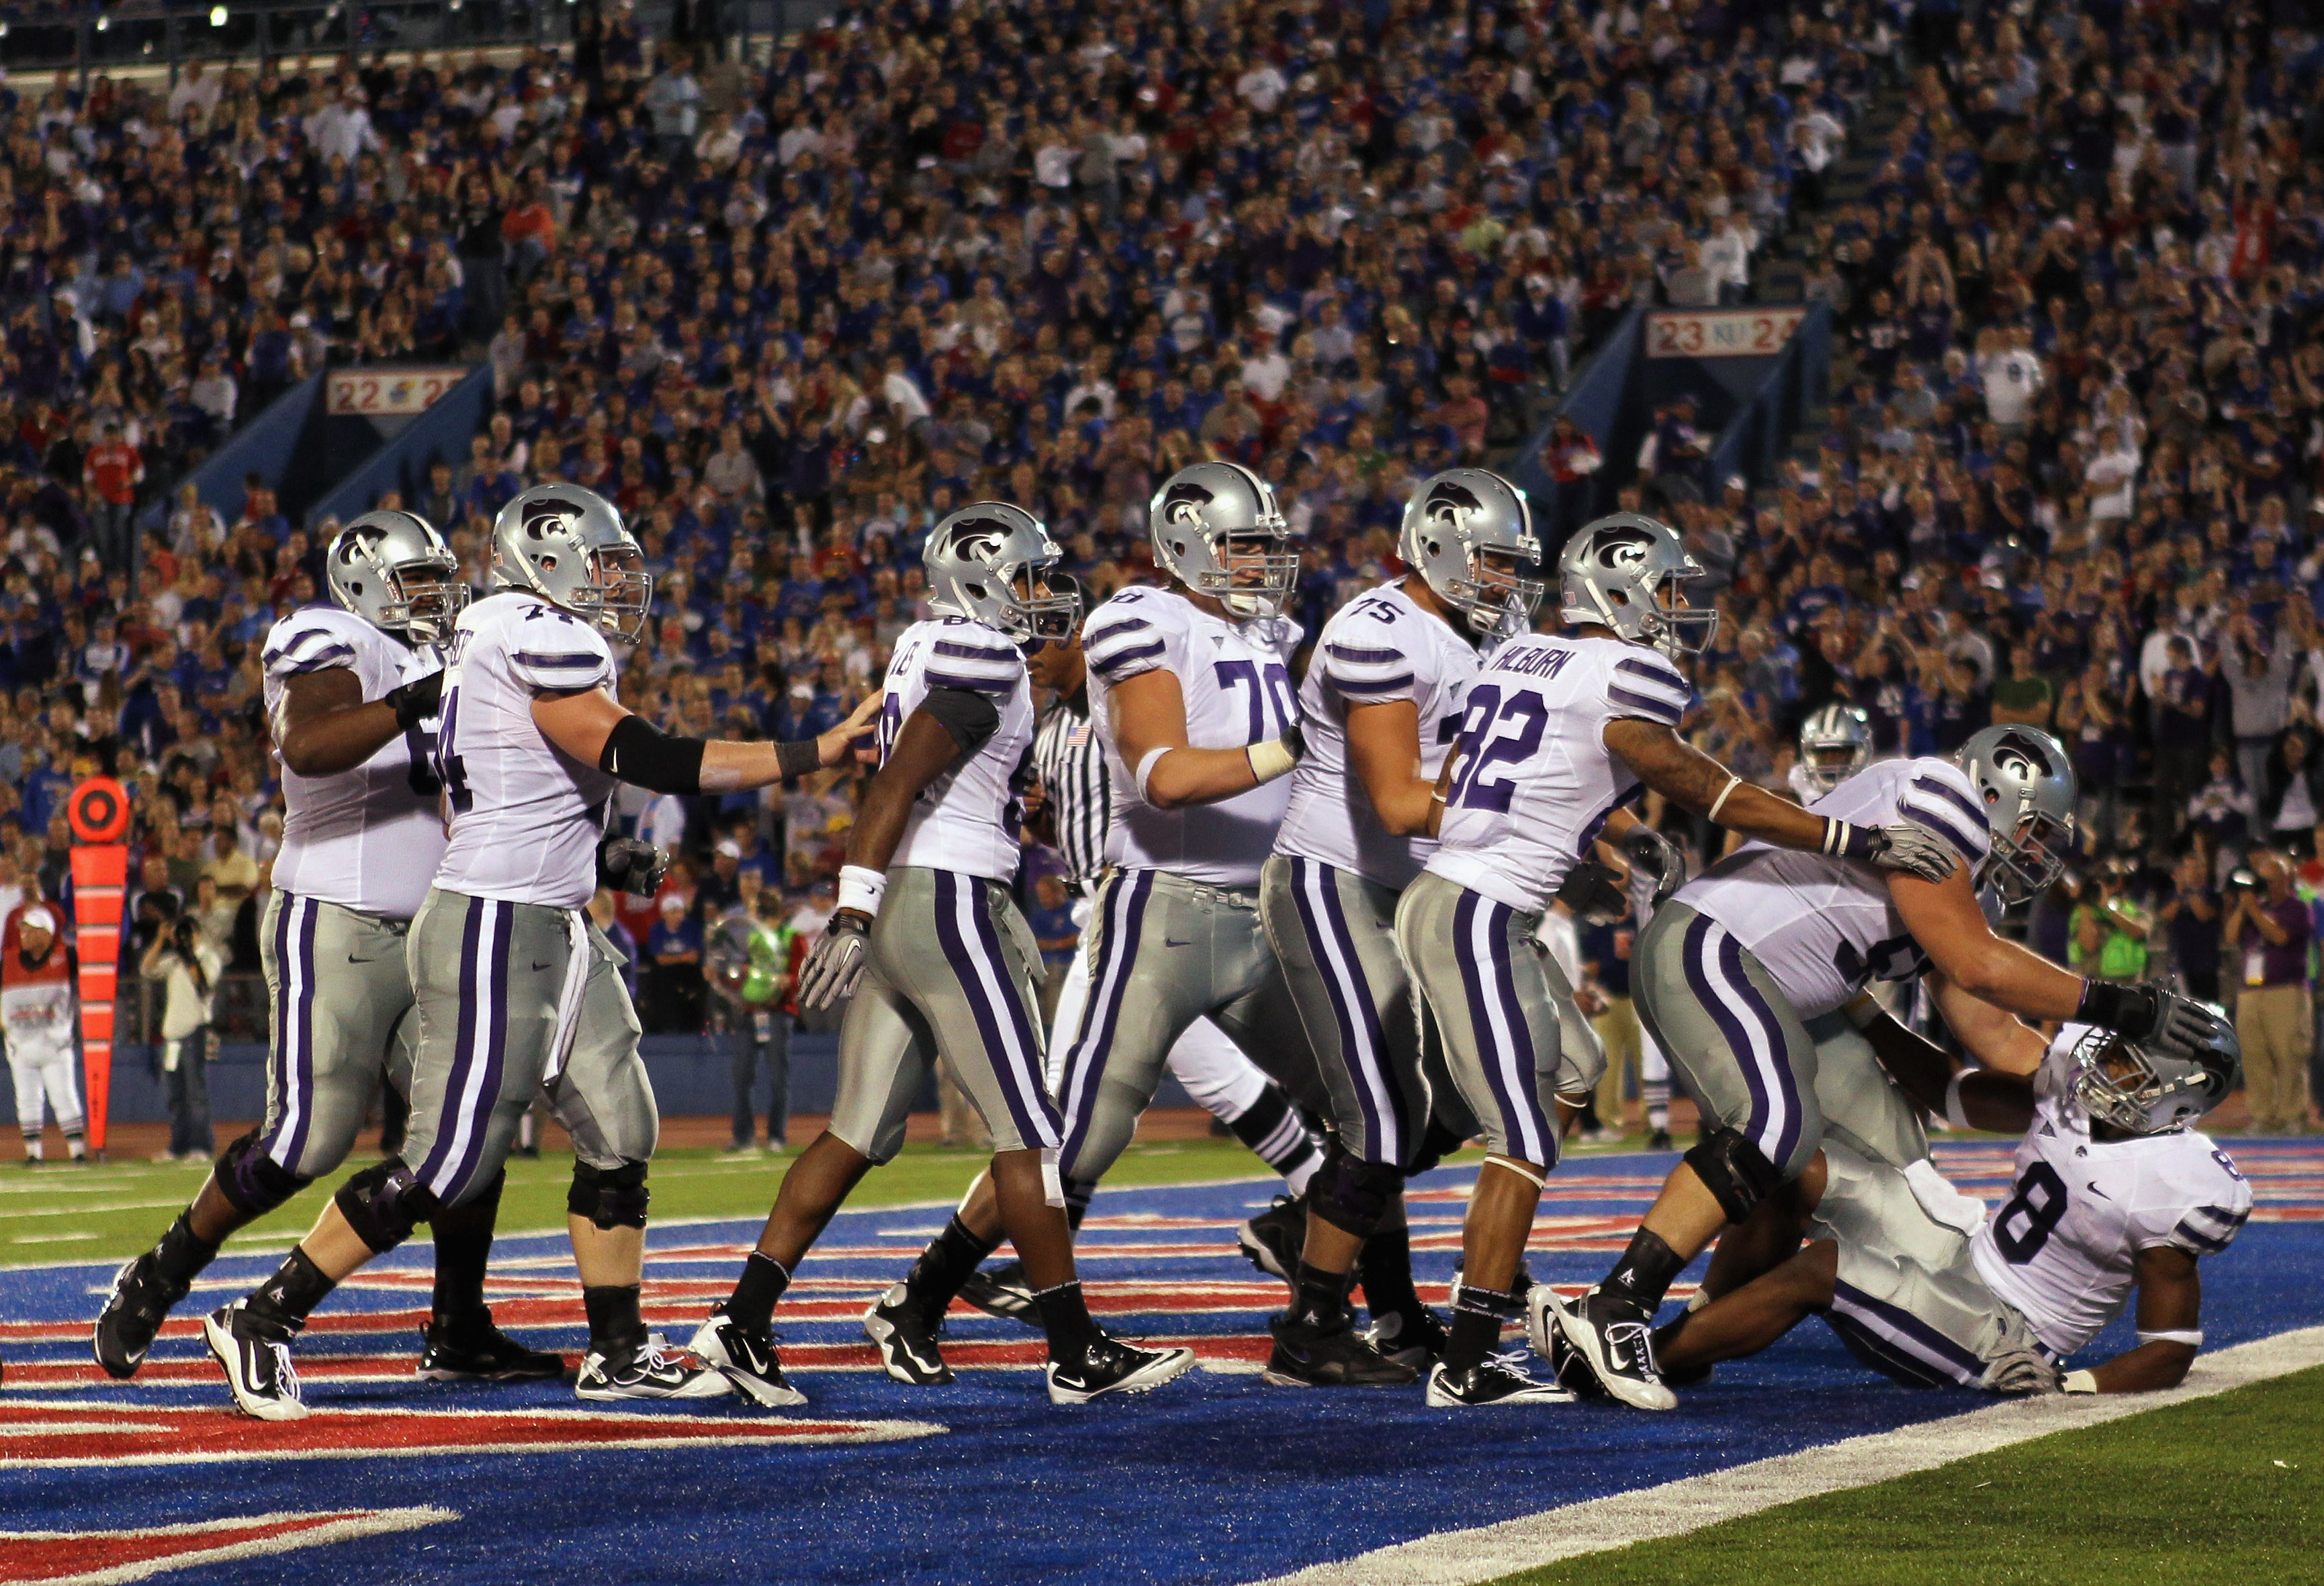 LAWRENCE, KS - OCTOBER 14:  Daniel Thomas #8 of the Kansas State Wildcats is congratulated by teammates after scoring a touchdown during the game against the Kansas Jayhawks on October 14, 2010 at Memorial Stadium in Lawrence, Kansas.  (Photo by Jamie Squ